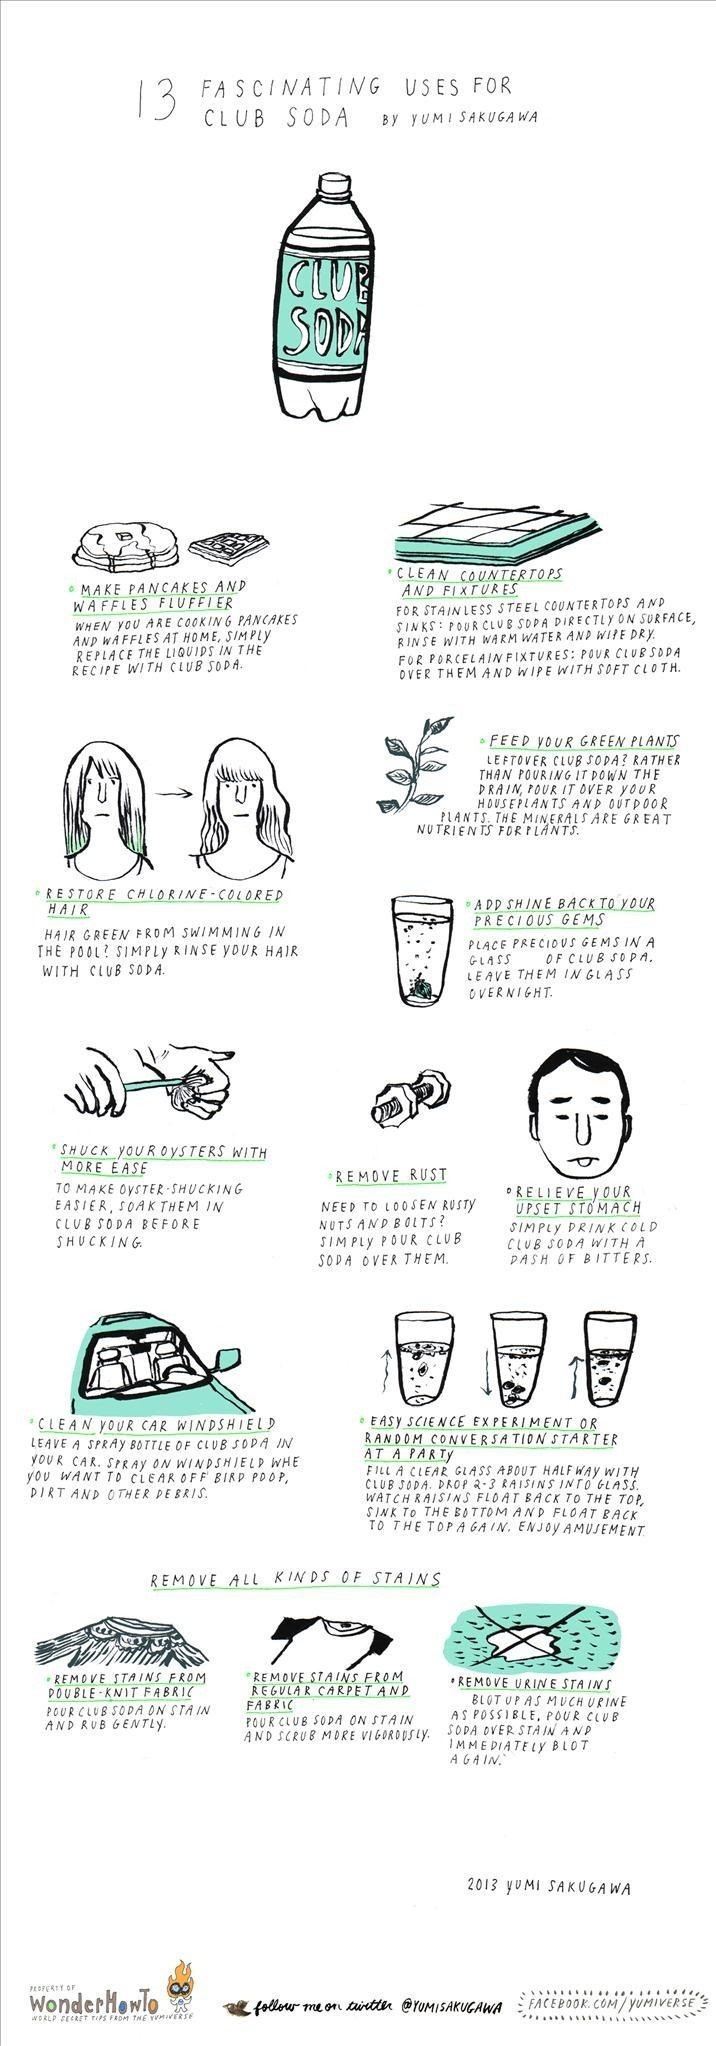 13 Fascinating Uses for Club Soda